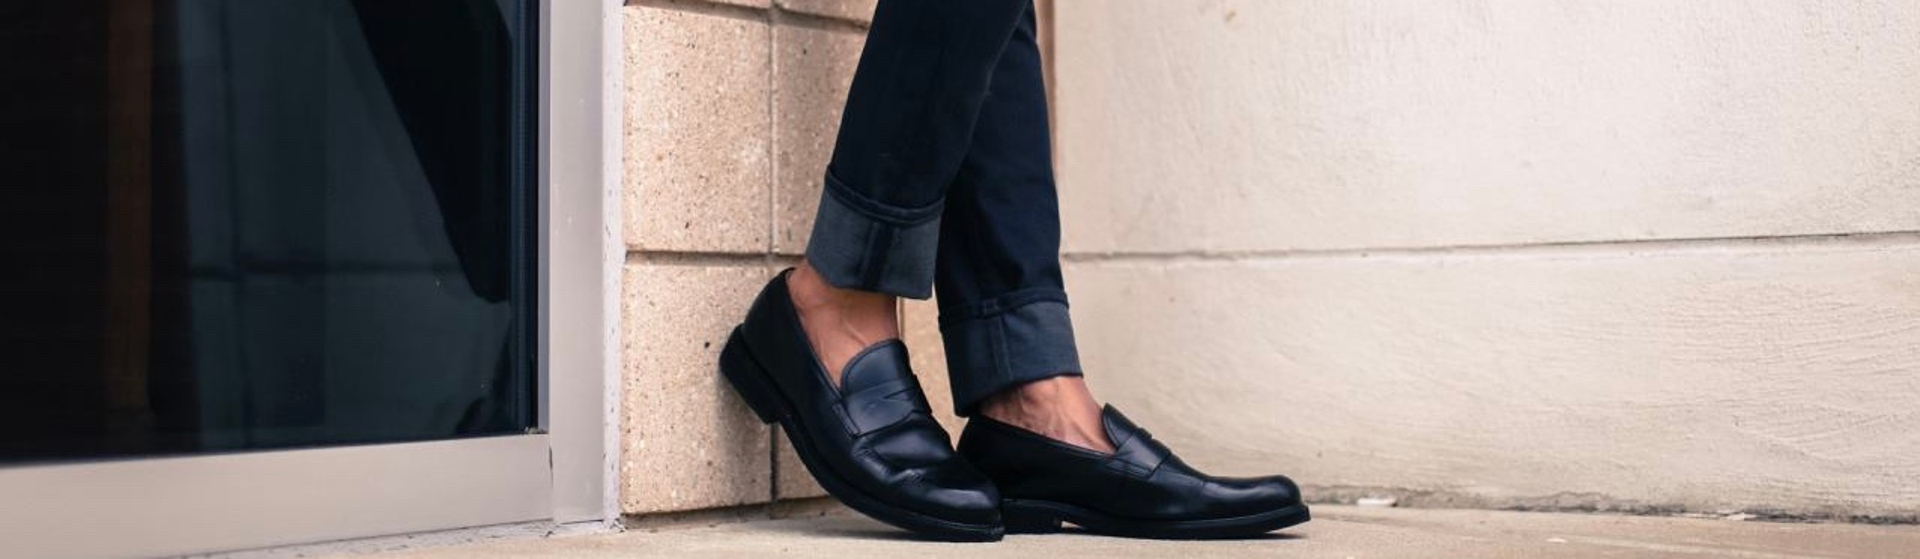 Feet in black oxfords resting against brick wall